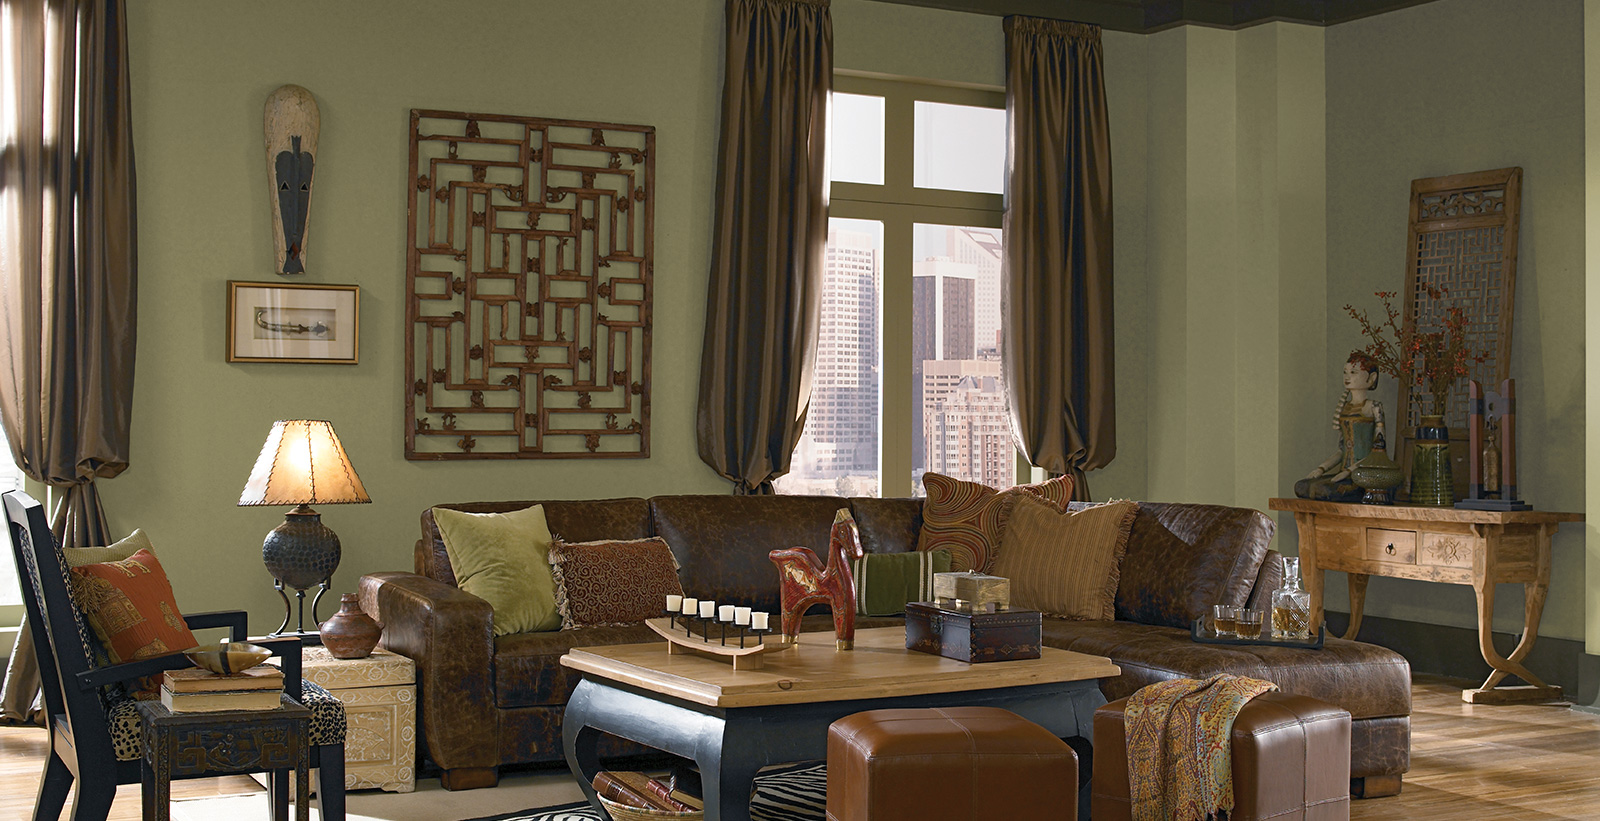 Eclectic Living Room Ideas And Inspirational Paint Colors Behr